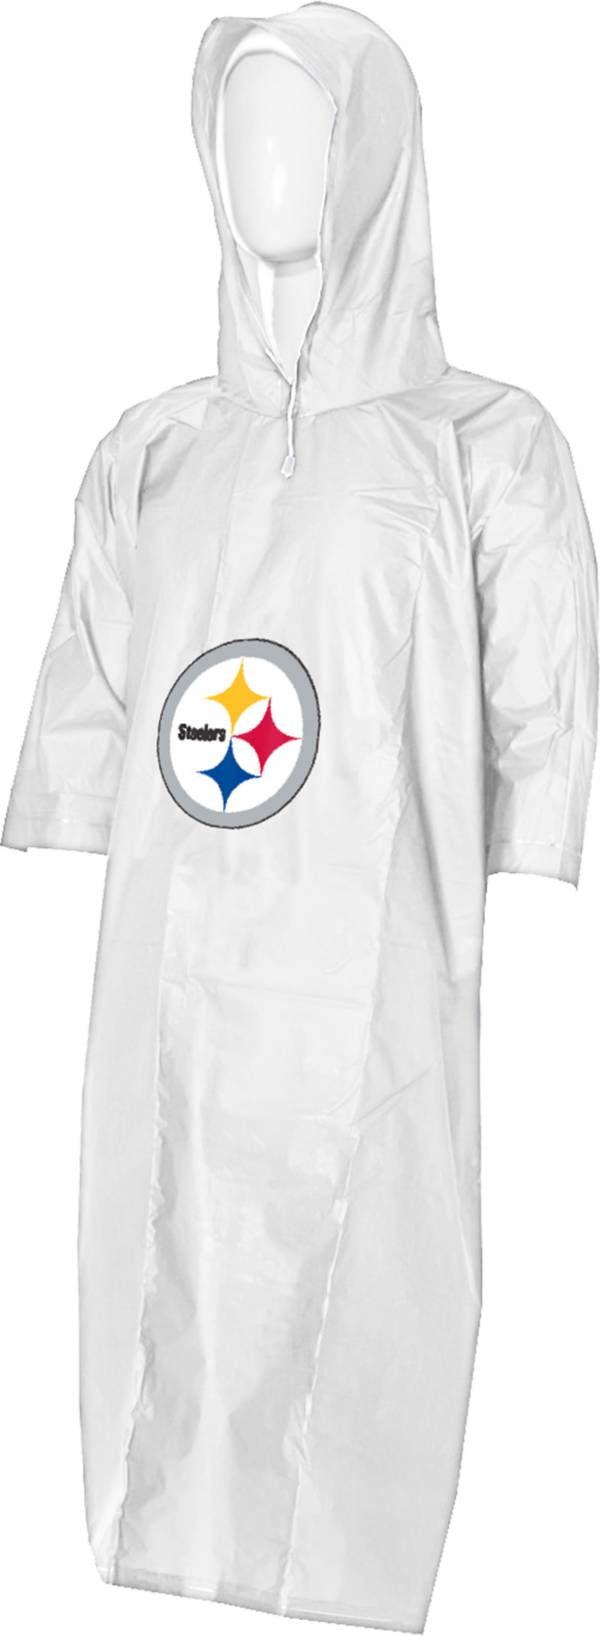 Northwest Pittsburgh Steelers Clear Poncho product image